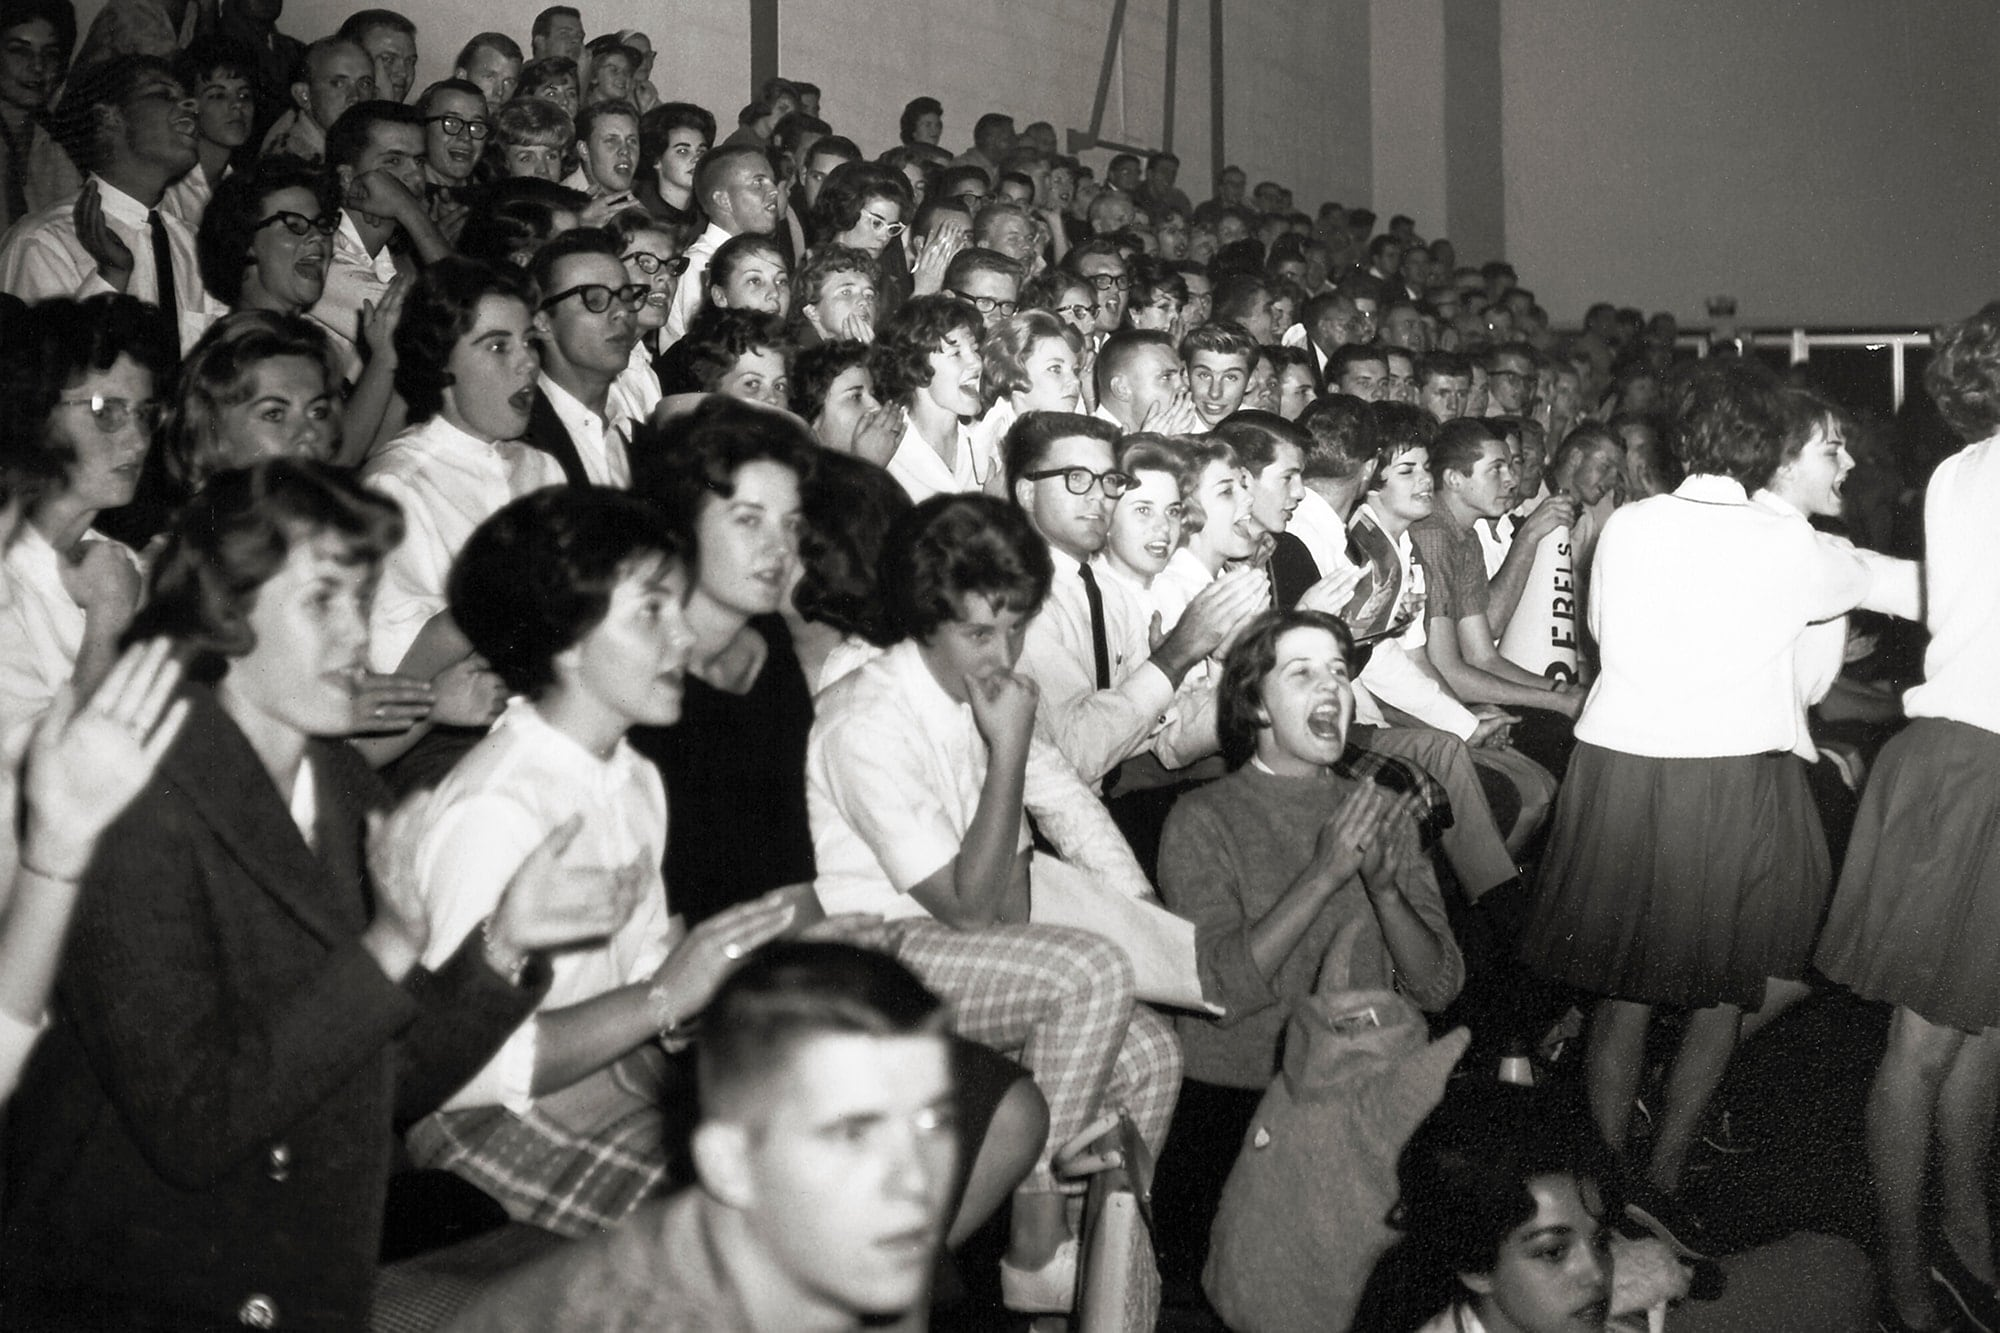 Historical photo of a crowd watching a game